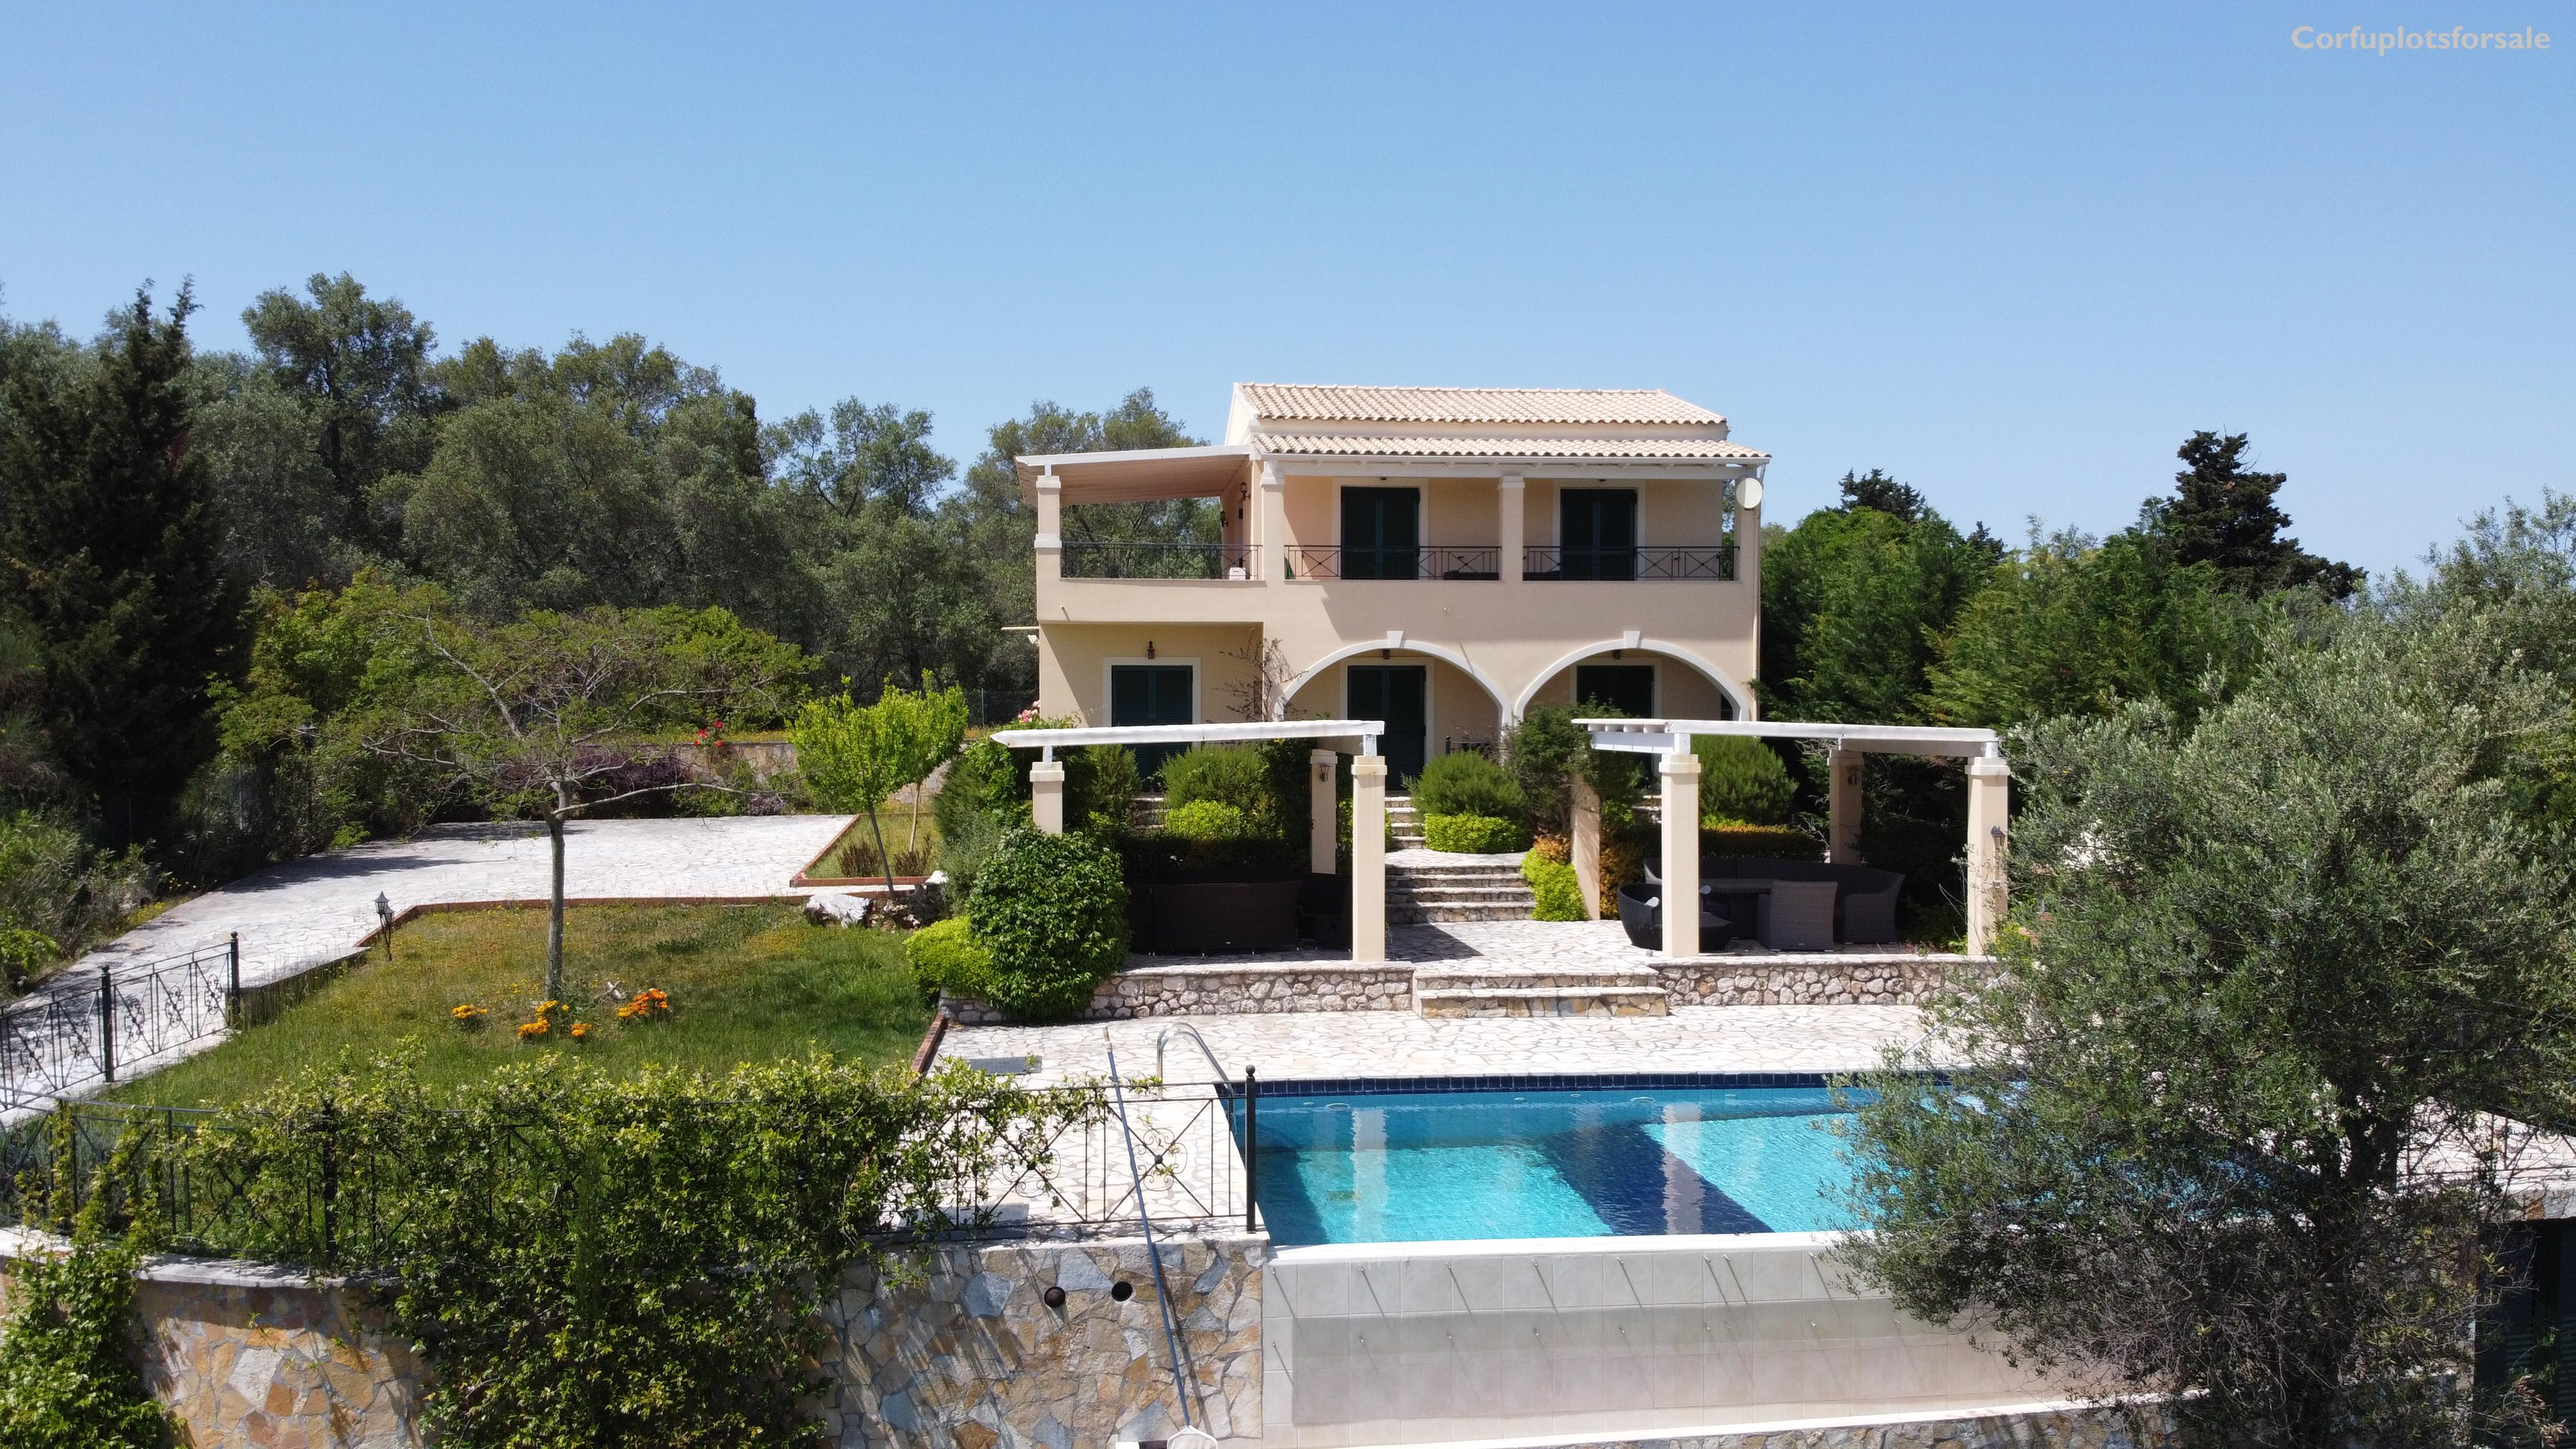 A 170 sq.m villa with basement and pool at the top of a hill in Poulades